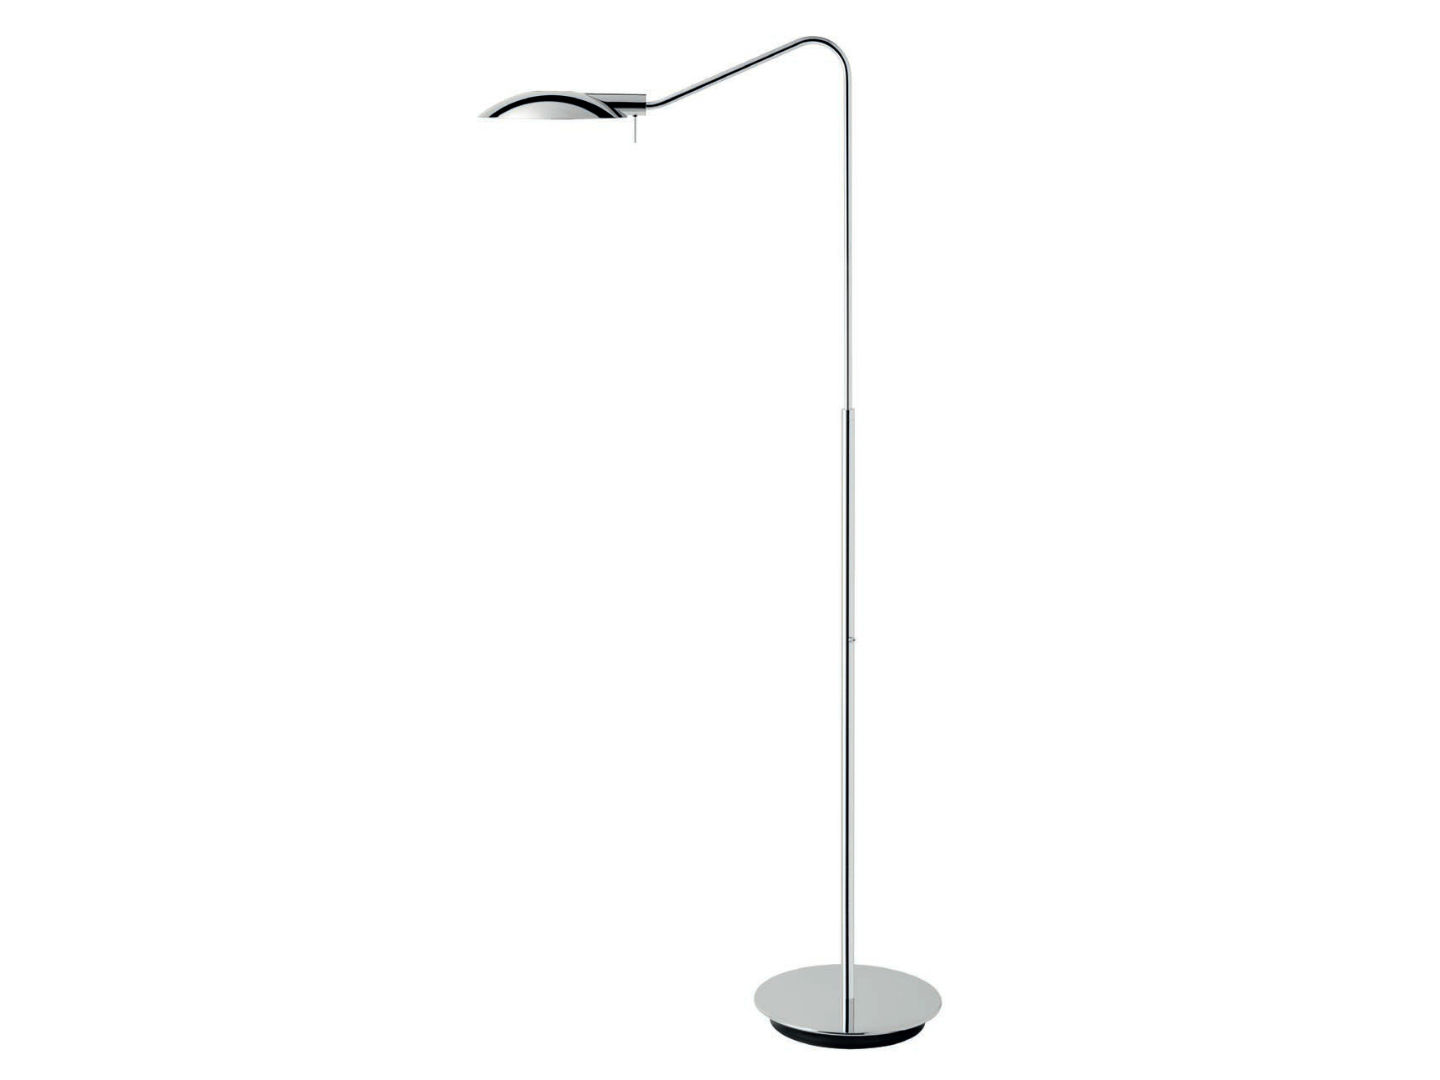 P 1062 lámpara of Floor Lamp telescópica R7s 1x200w Nickel